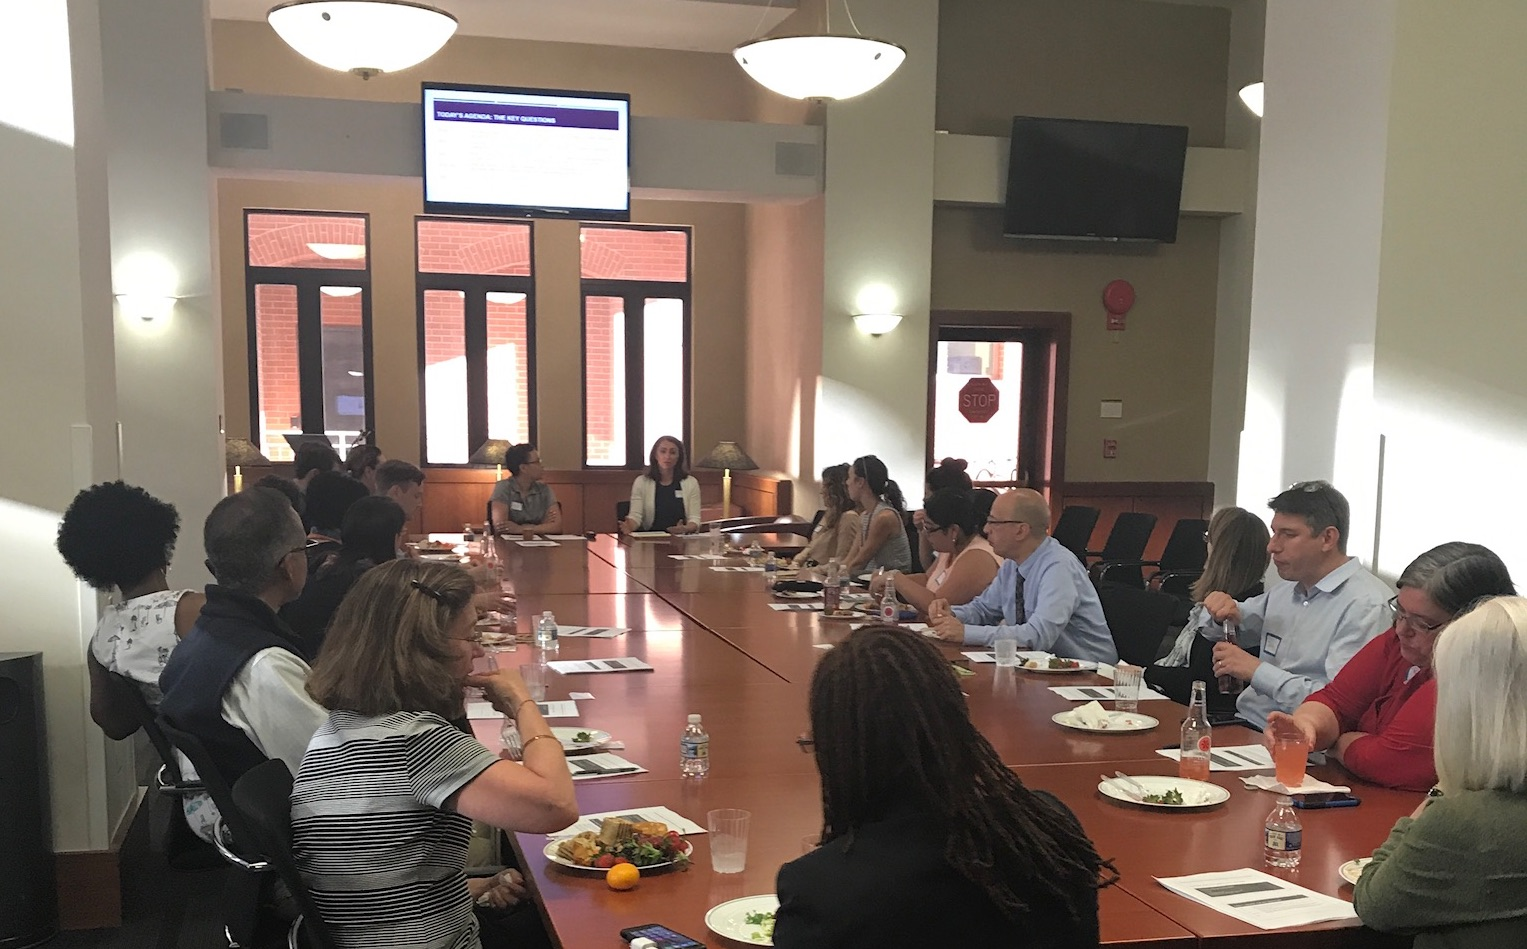 """Shauna C. Bryce with Leesa Kleeper presenting """"Success and Wellbeing for Lawyers: How can you be more successful and less stressed?"""" for Harvard Law School Association of Washington DC at George Washington Law School's law library."""